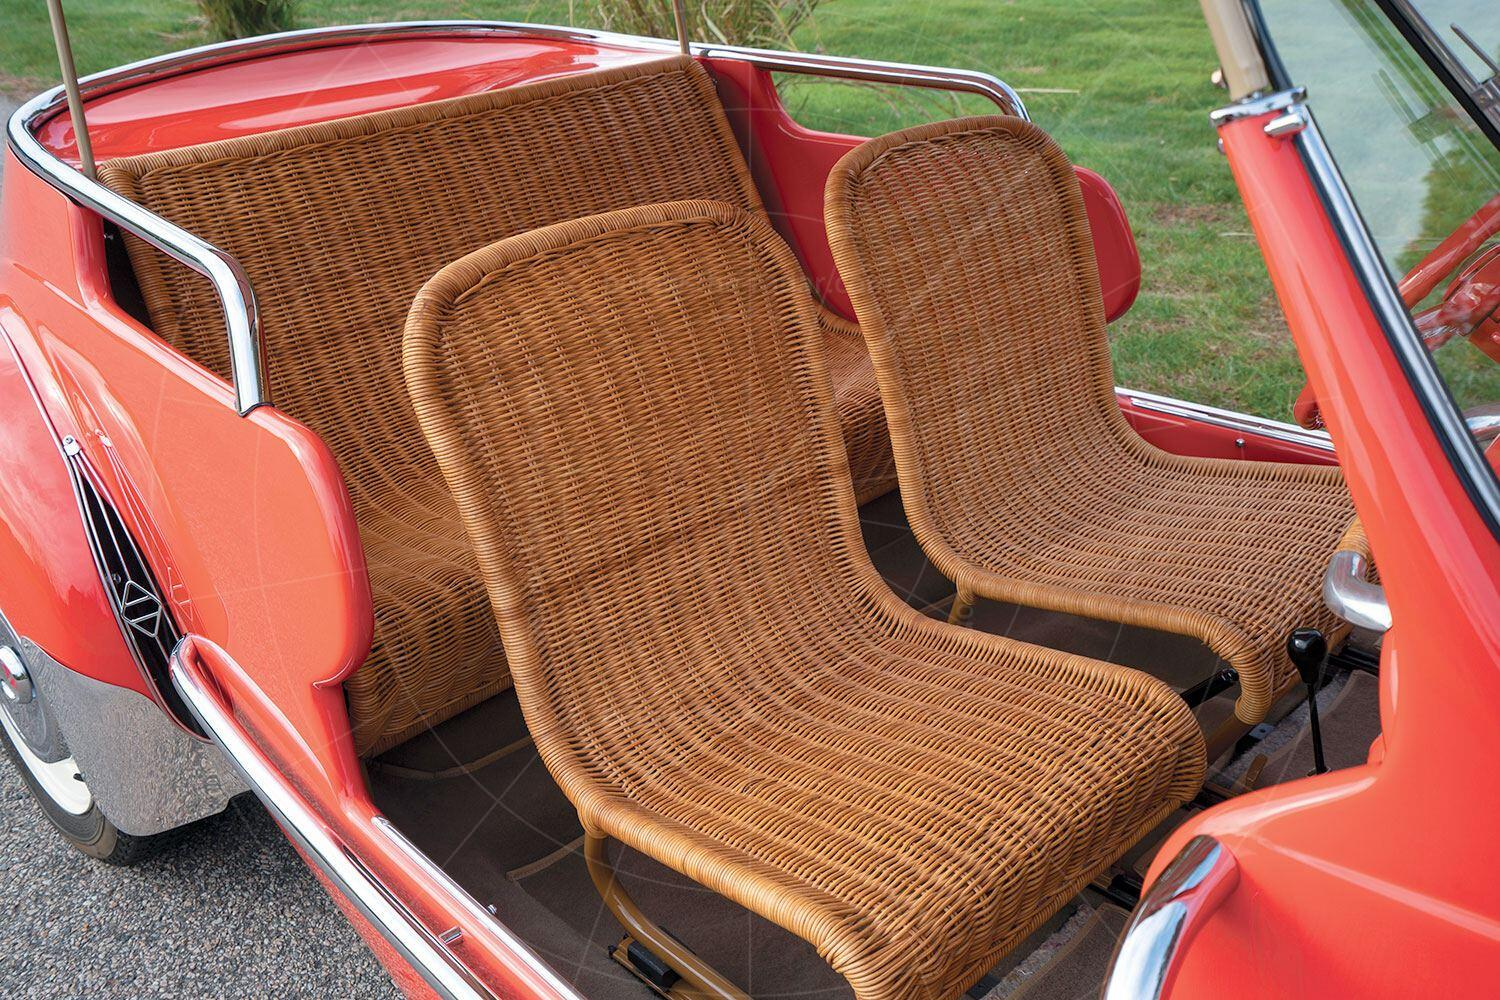 Renault 4CV Jolly interior Pic: RM Sotheby's   Renault 4CV Jolly interior